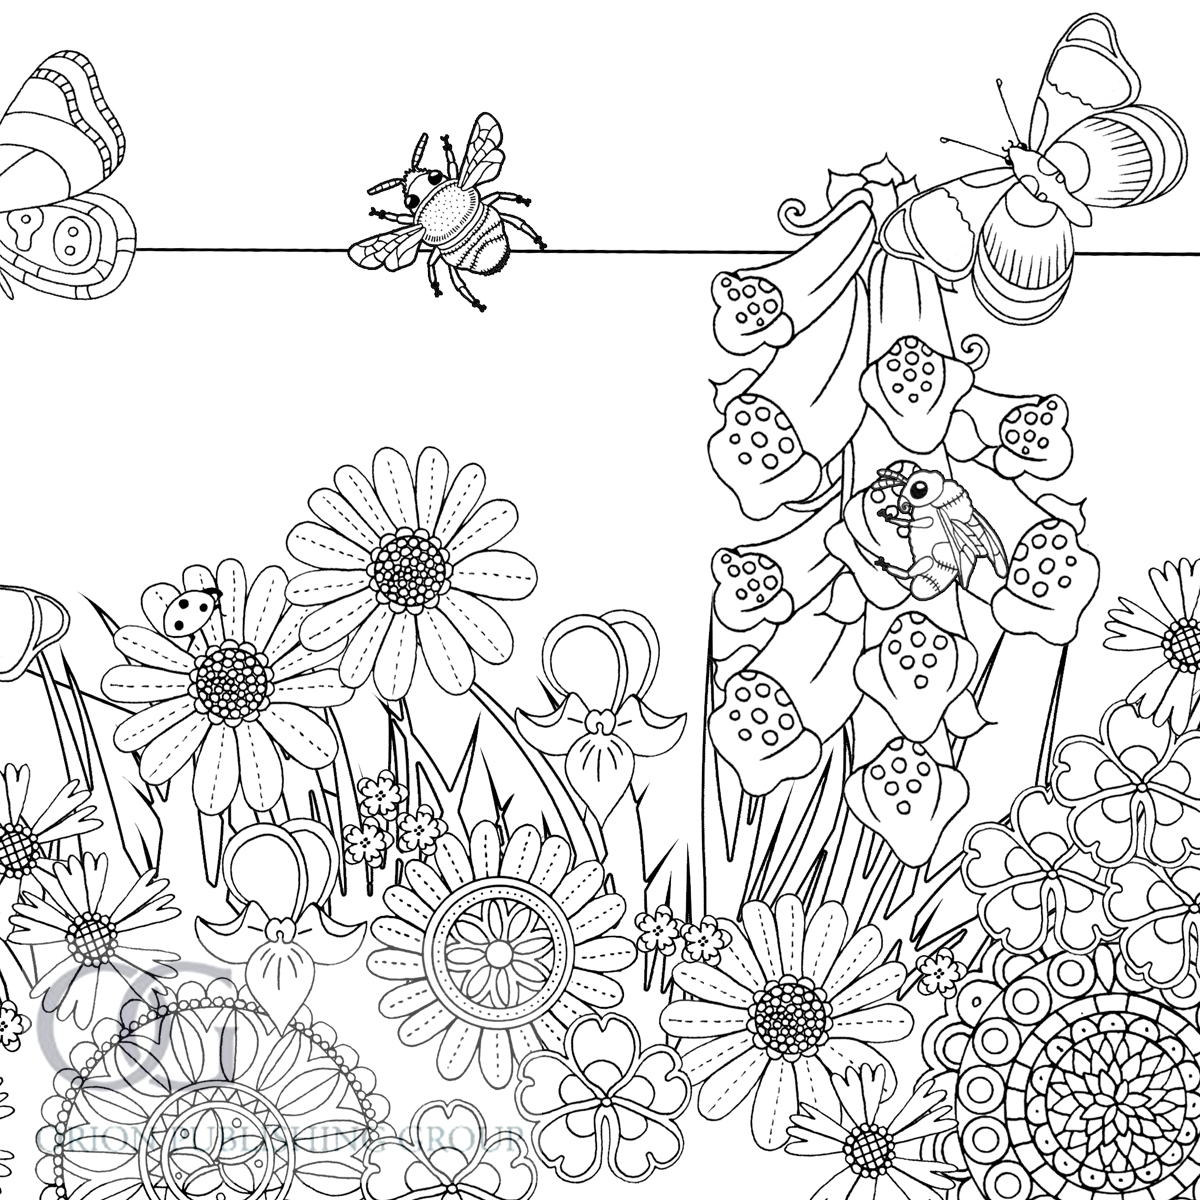 89 Color Me Mindful Coloring Book